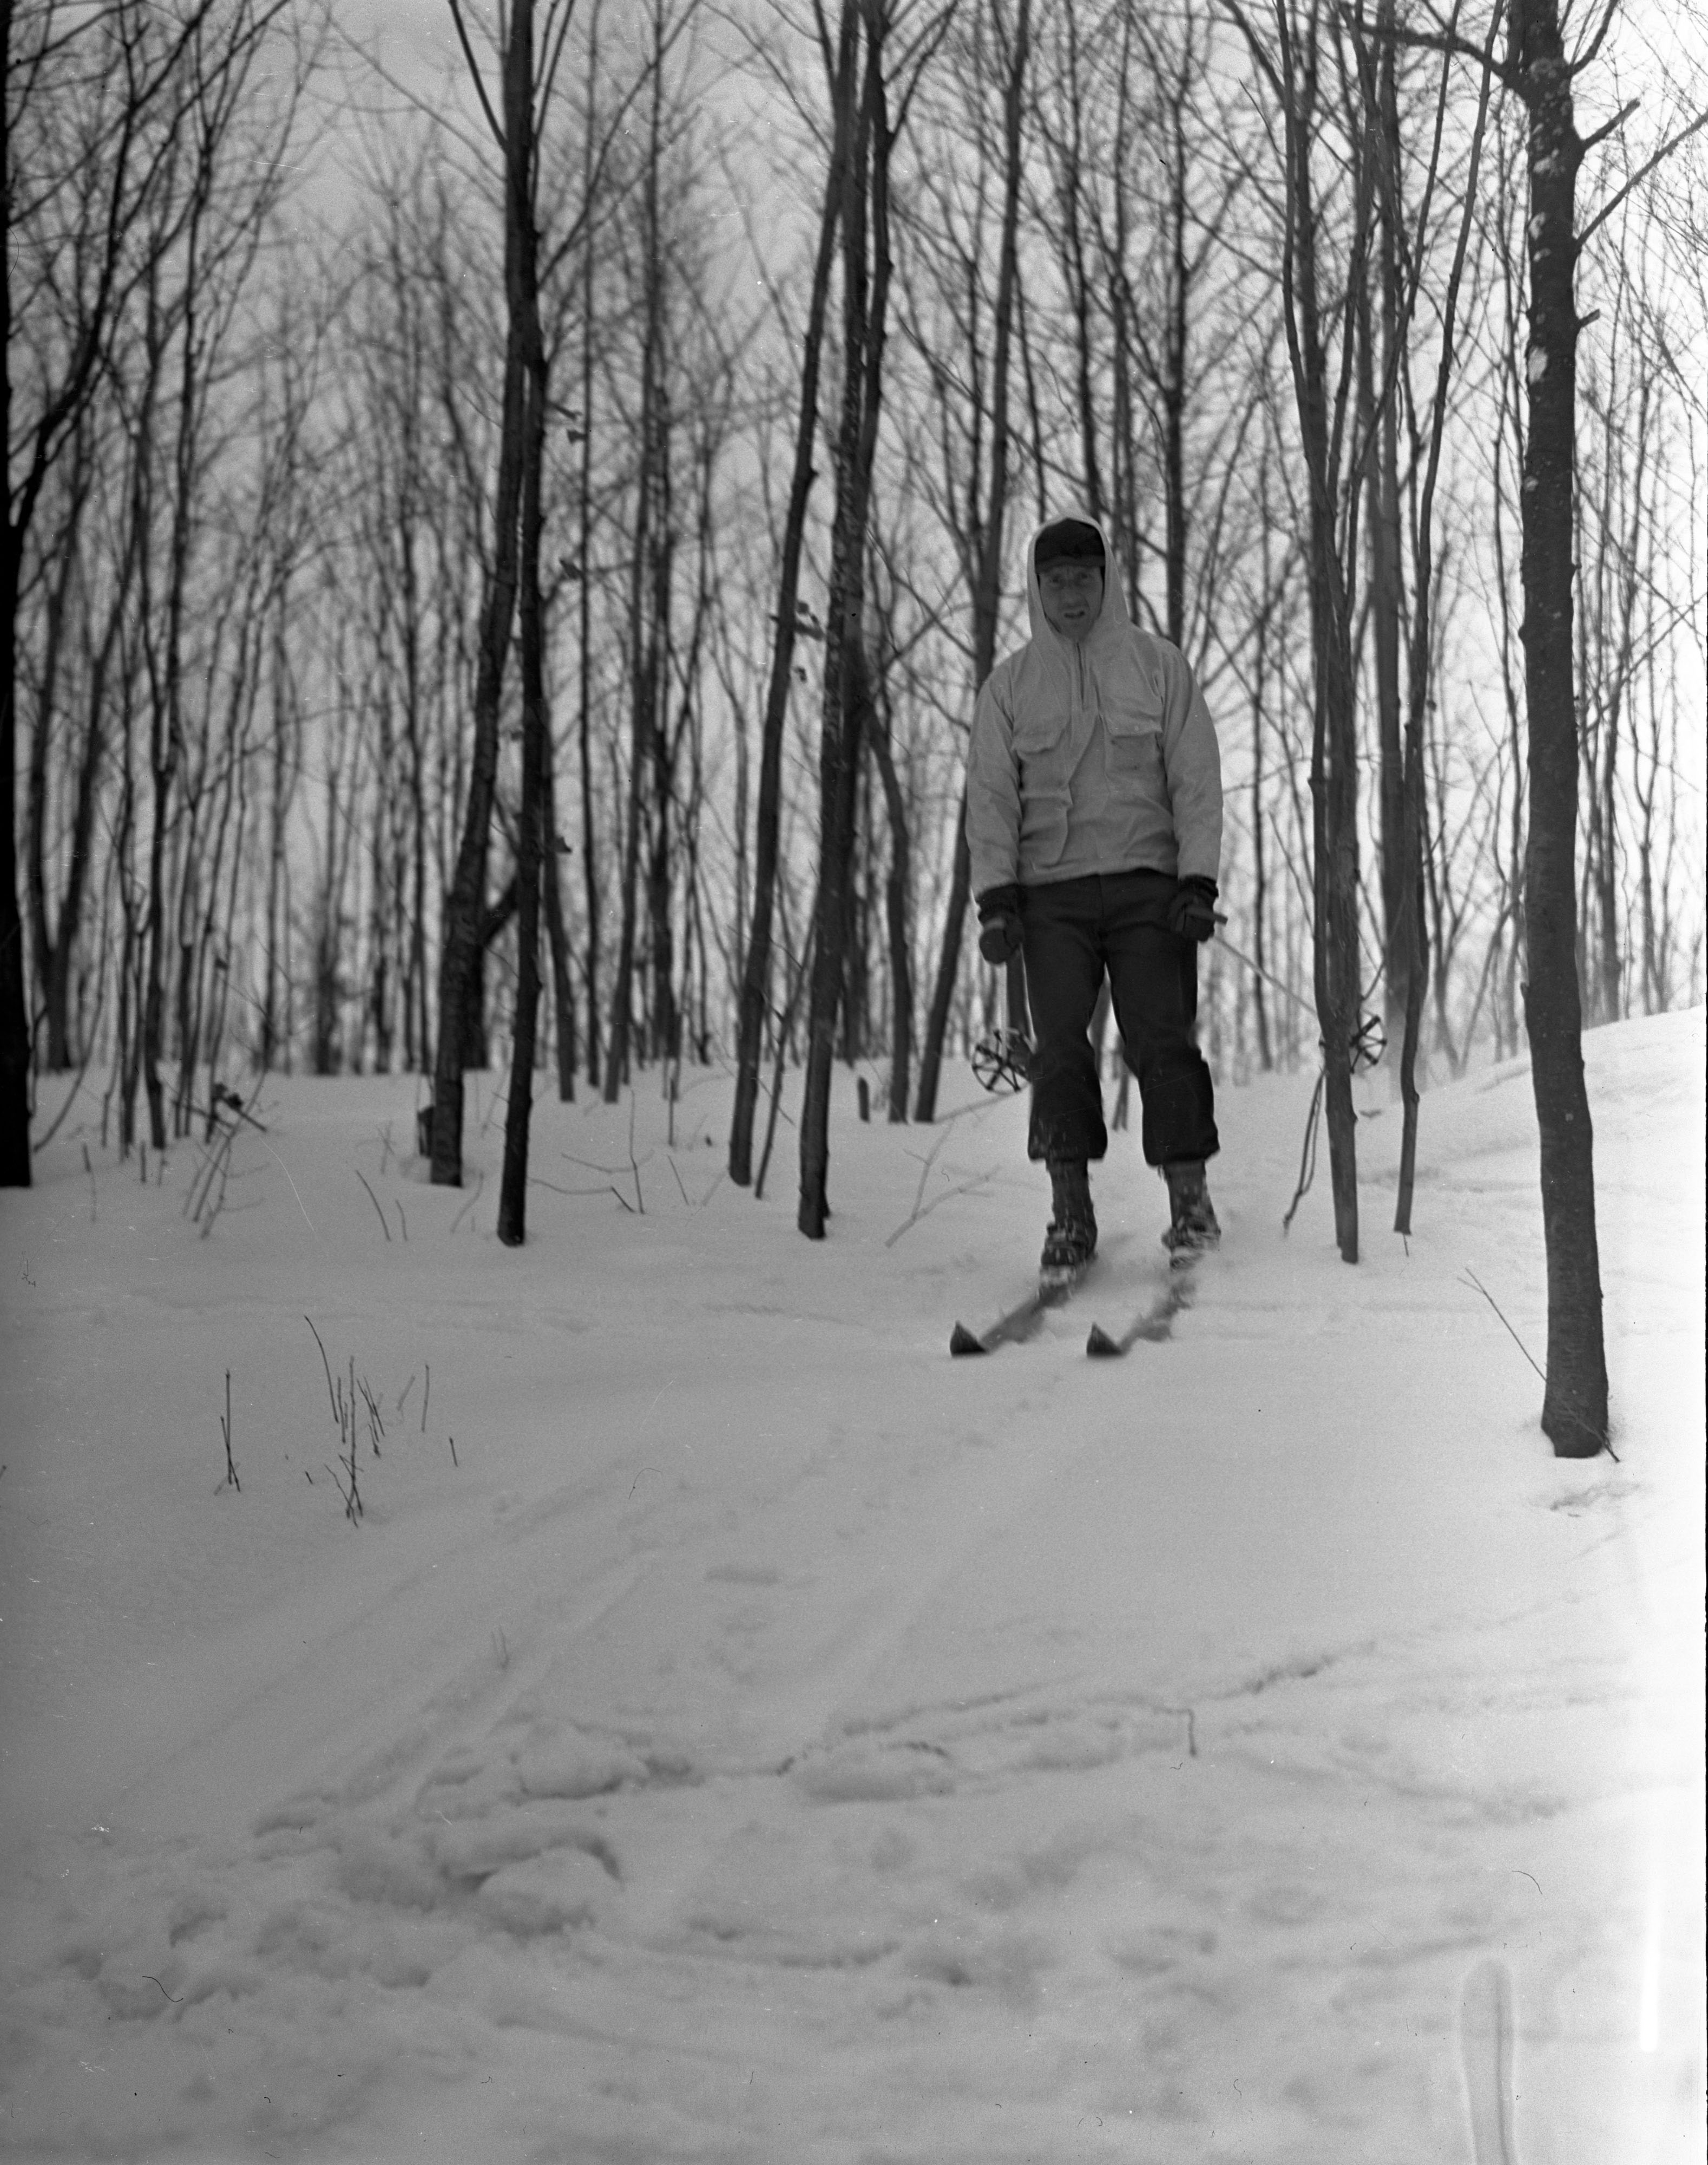 Lone Skier With Hood Up At Caberfae, February 1940 image